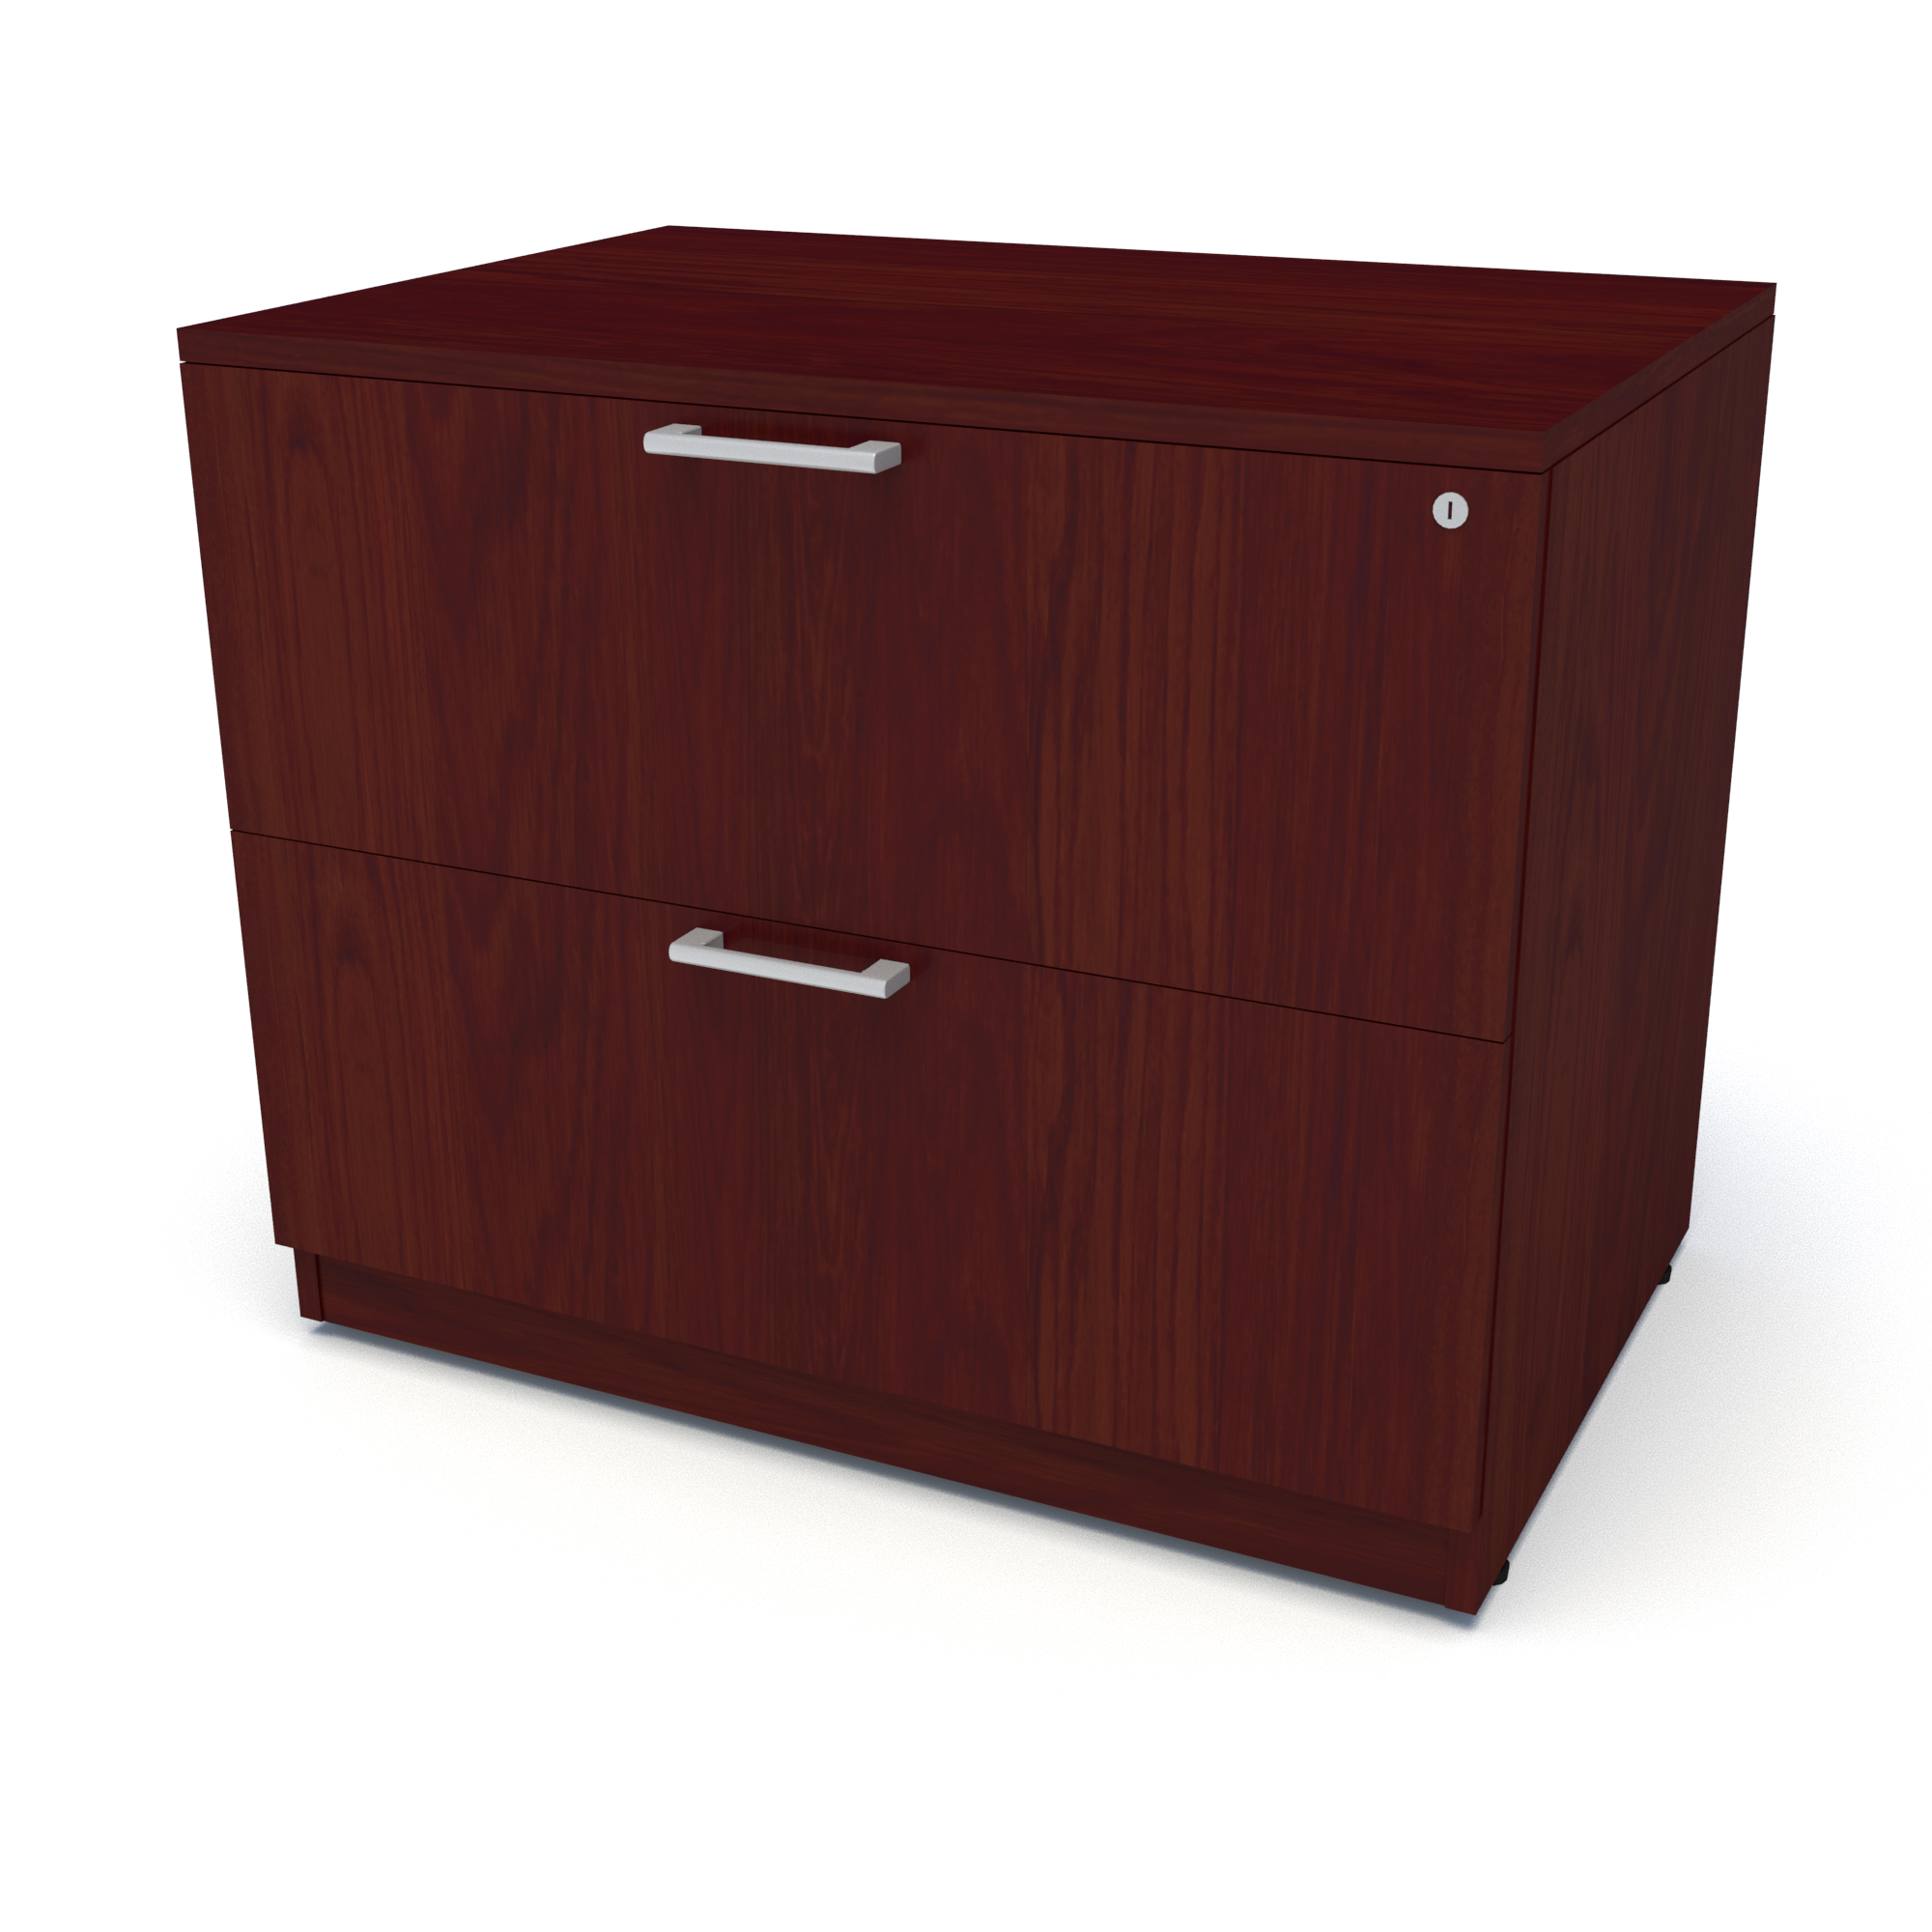 Lateral File (American Cherry)